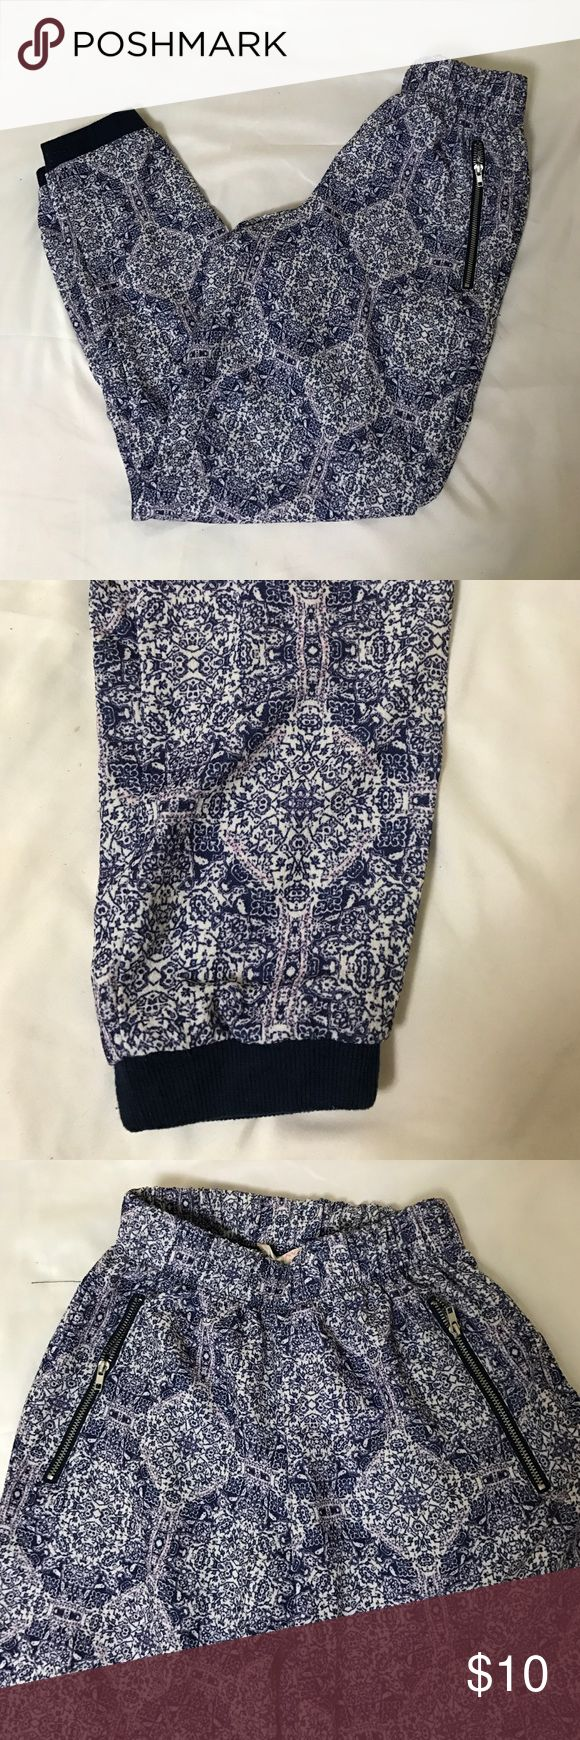 Boho Print Pants 98% polyester 2% spandex pants. Elastic waistband & elastic band on legs. From junior's section at Kohl's Pants Ankle & Cropped